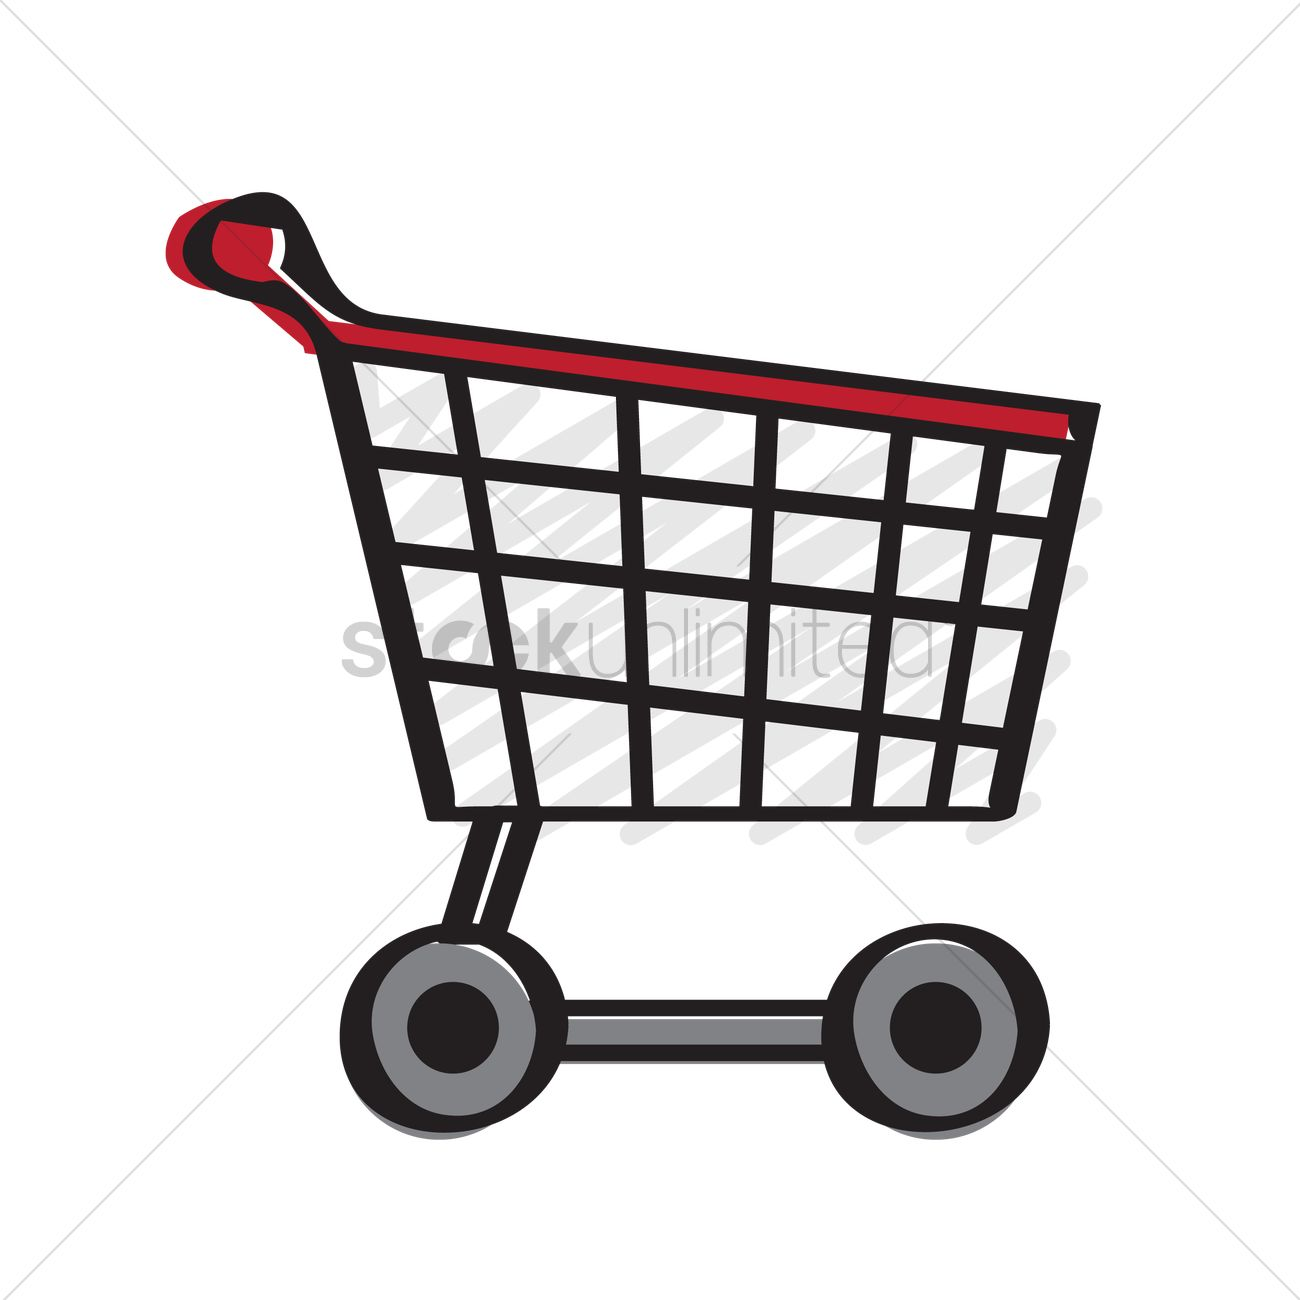 illustration of a trolley vector image 1234813 stockunlimited rh stockunlimited com trolley clipart free supermarket trolley clipart